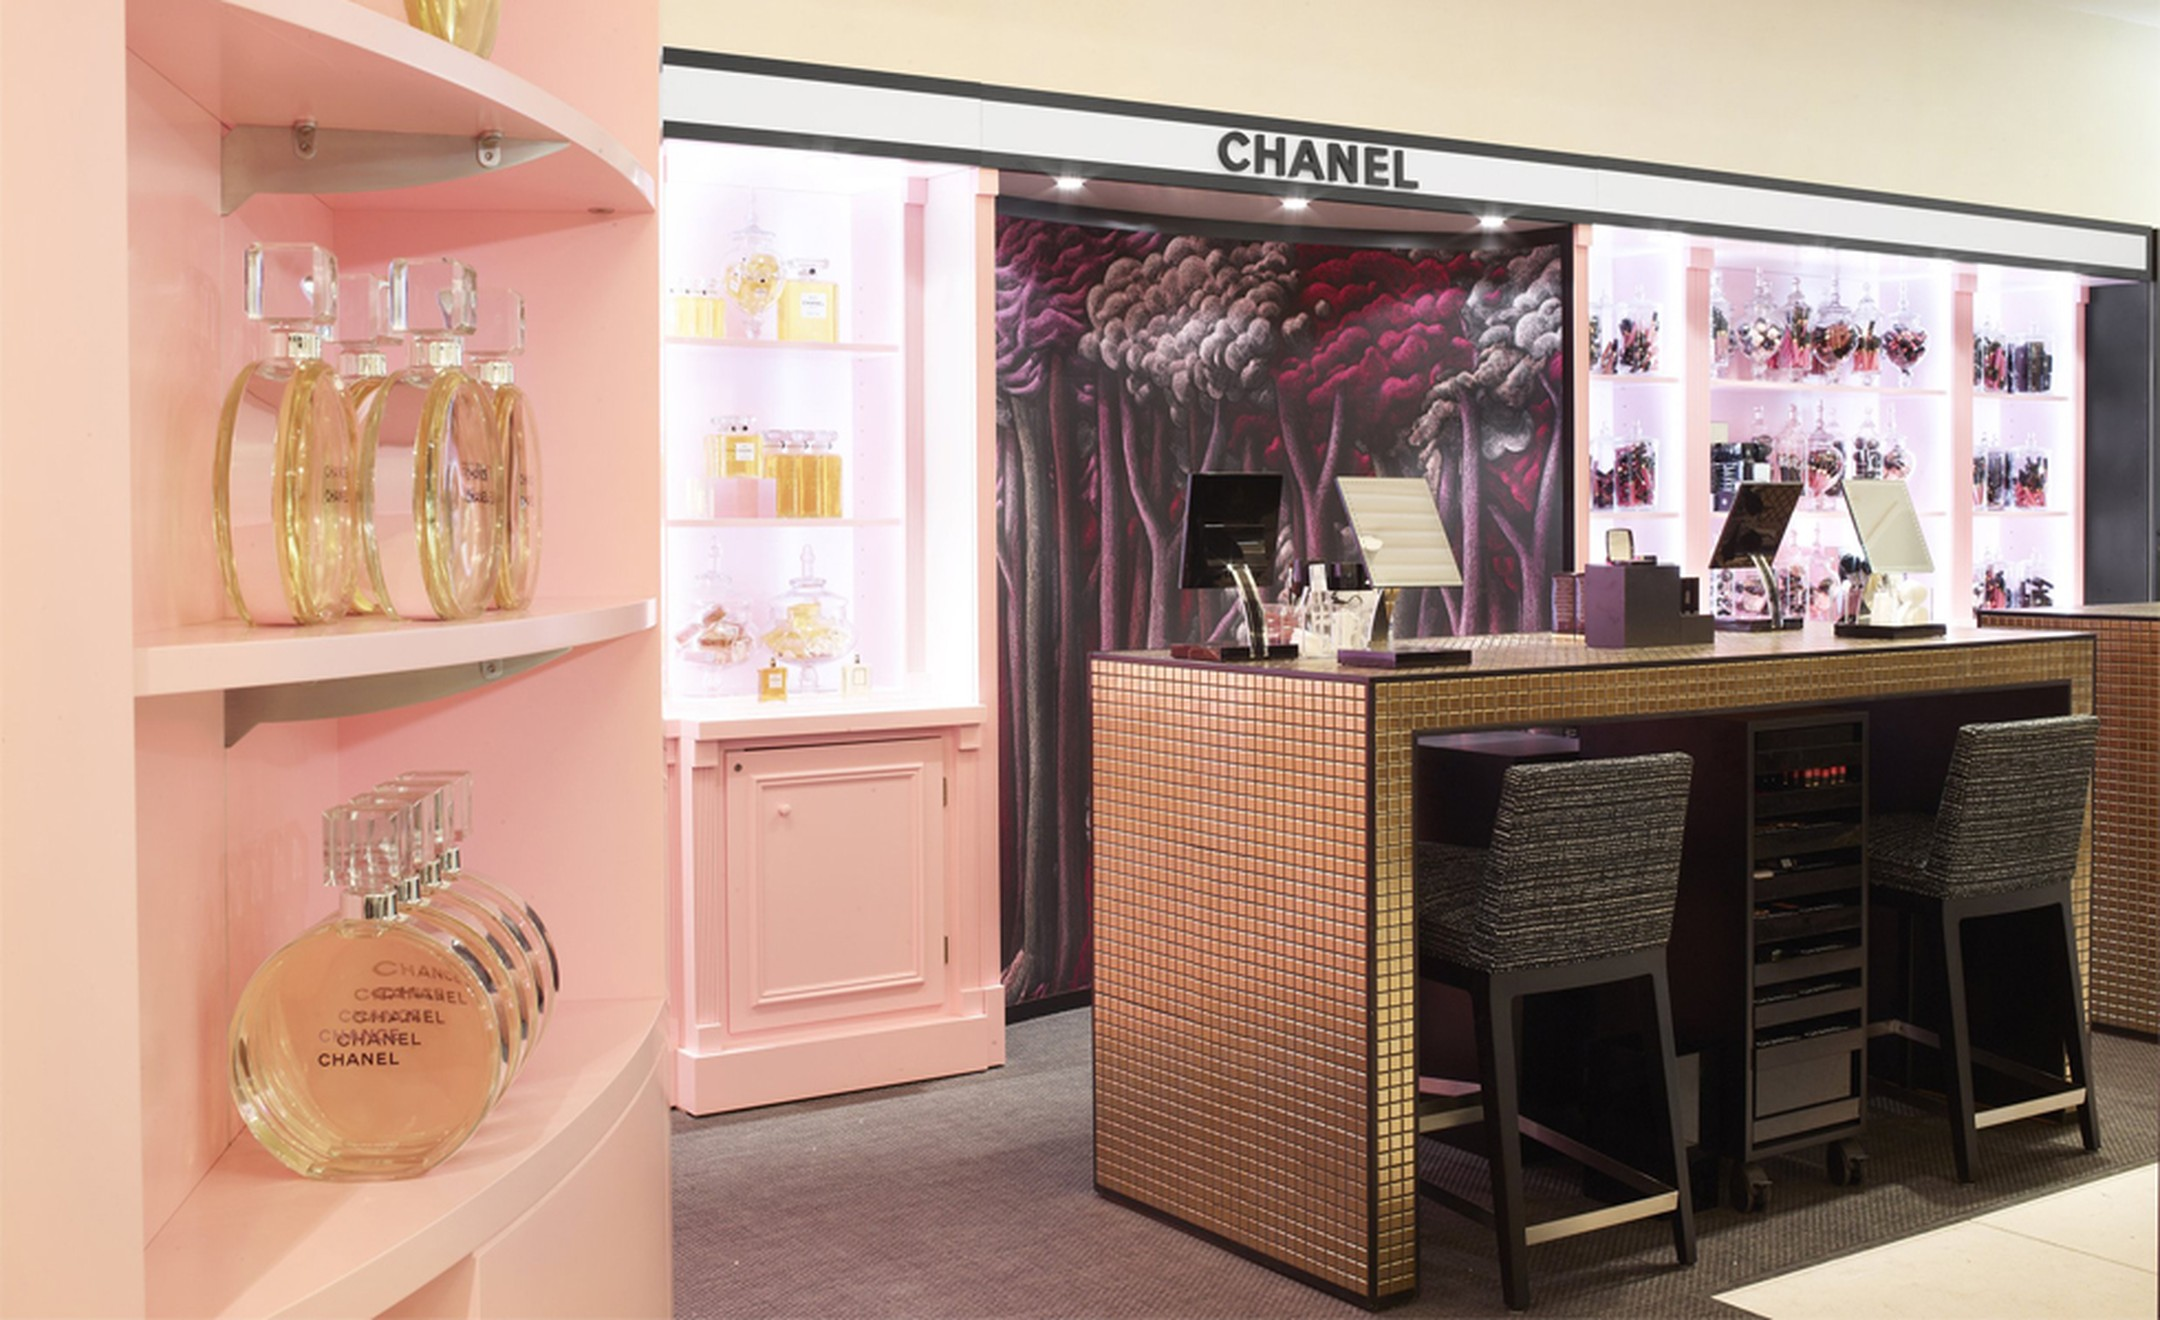 CHANEL: HARRODS Beauty Ephermel Boutique